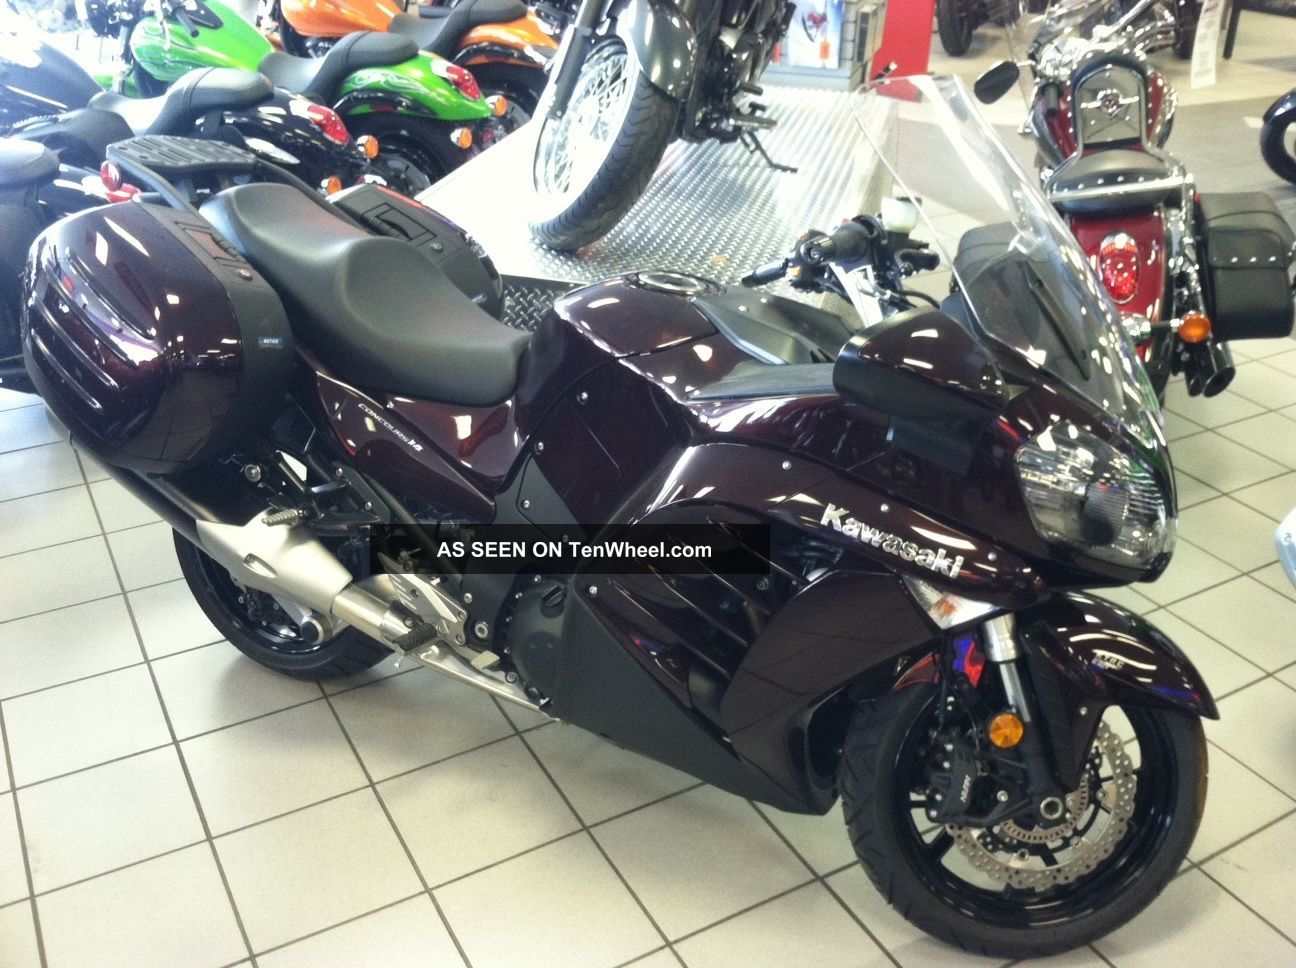 2012 Kawasaki Concours 1400 Abs Zg1400ccf Other photo